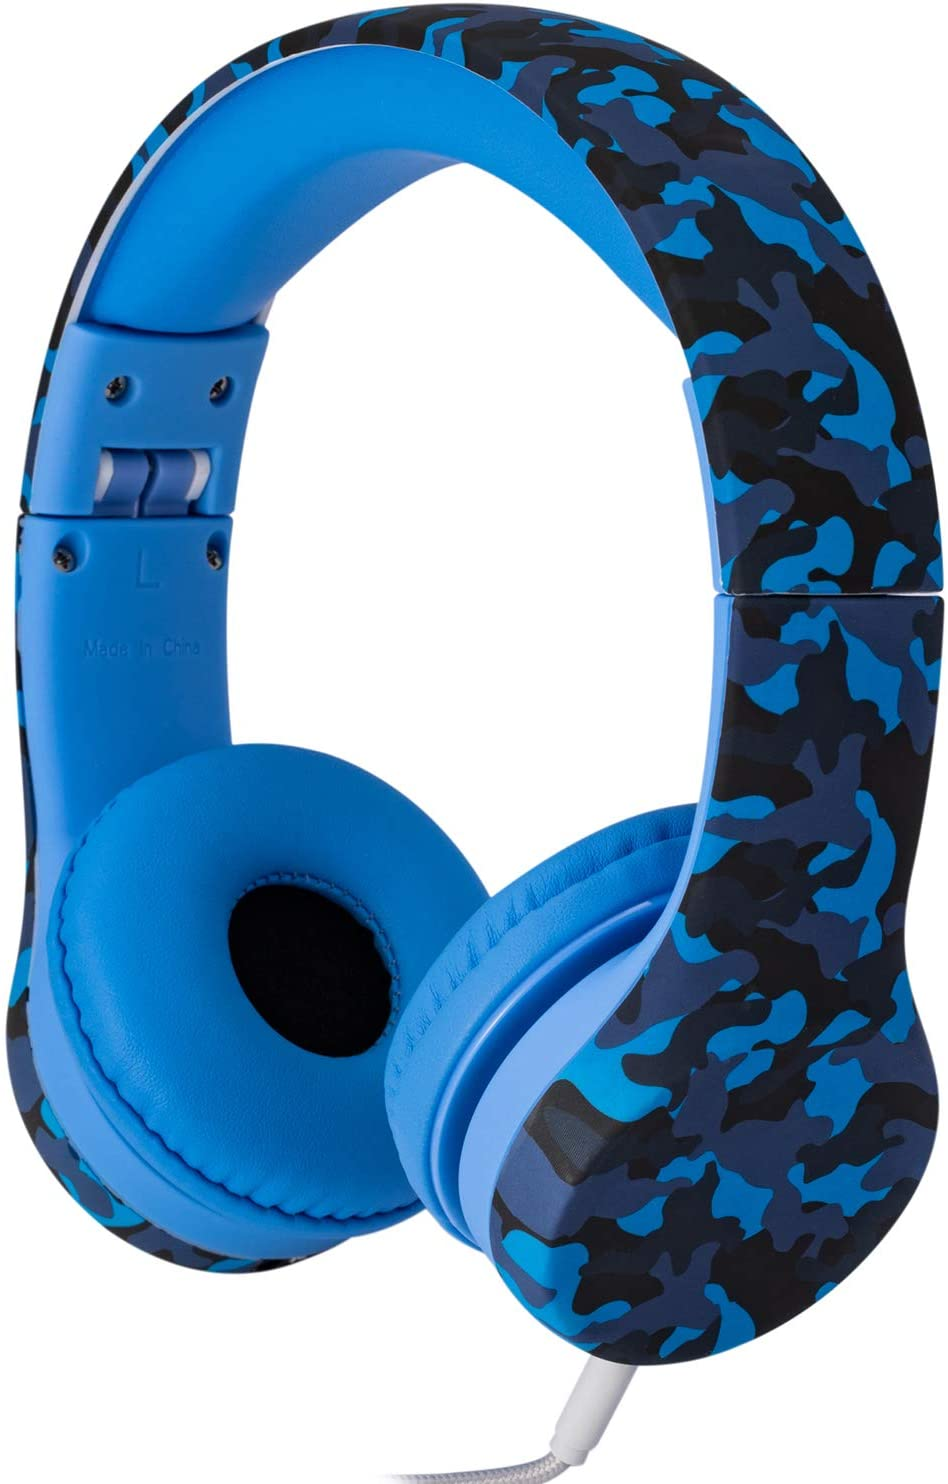 Snug Play+ Kids Headphones Volume Limiting and Audio Sharing Port (Blue Camo)